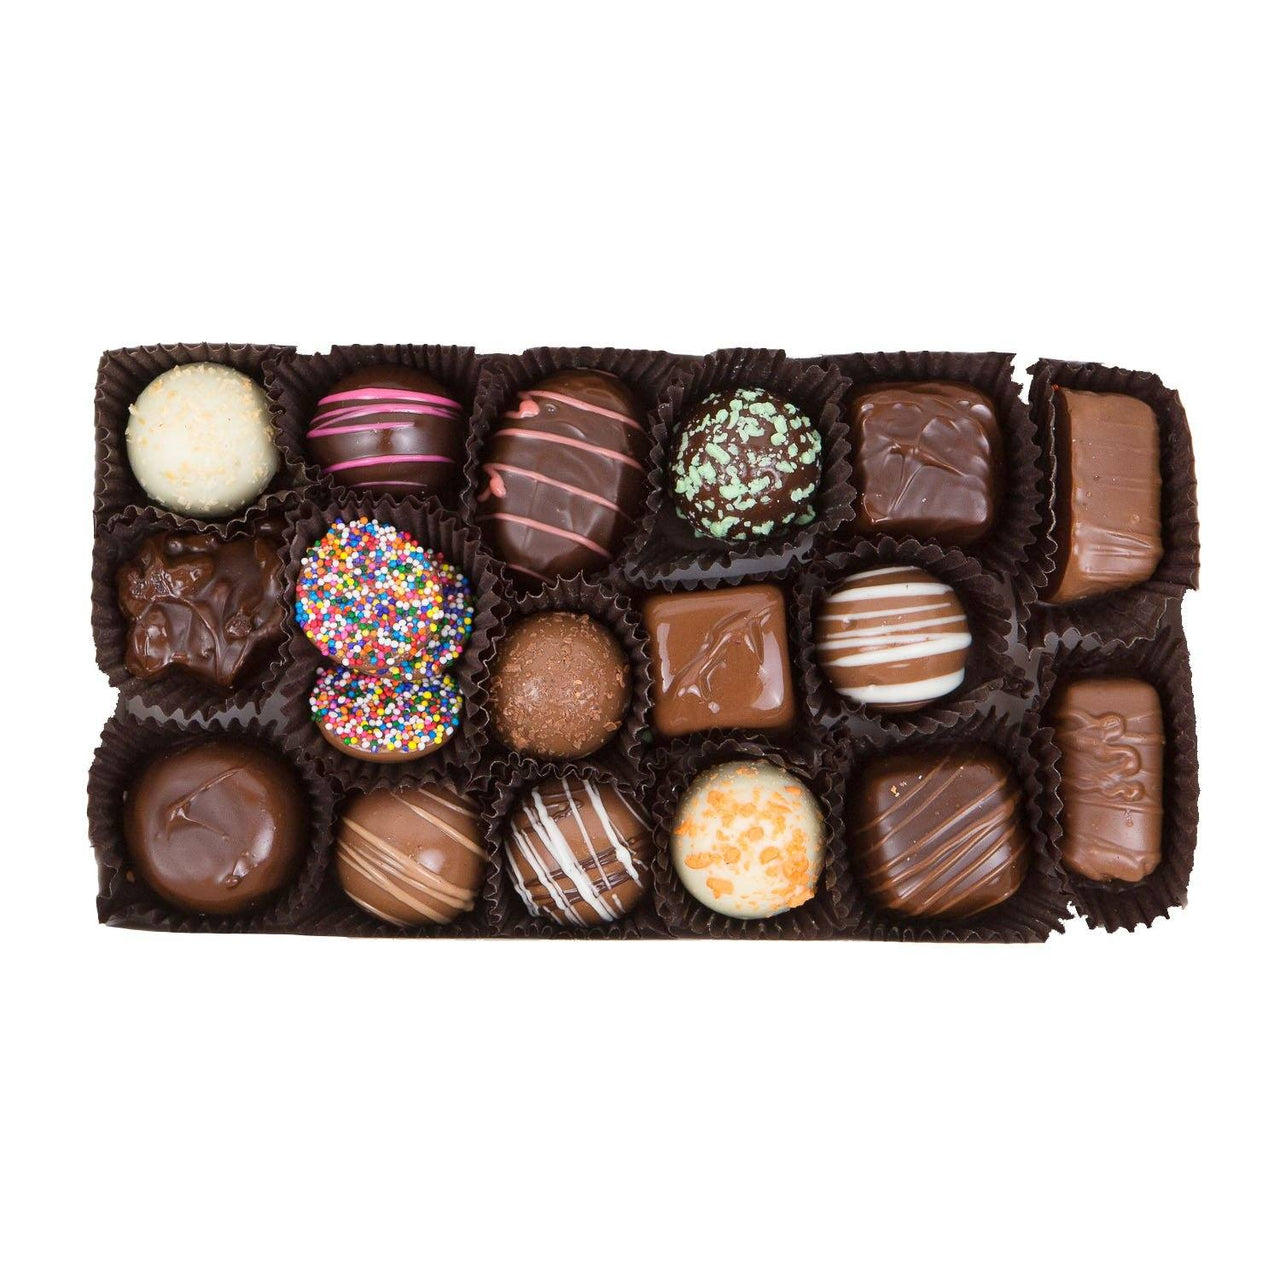 Unique Gifts - Assorted Chocolate Gift Box - Jackie's Chocolate